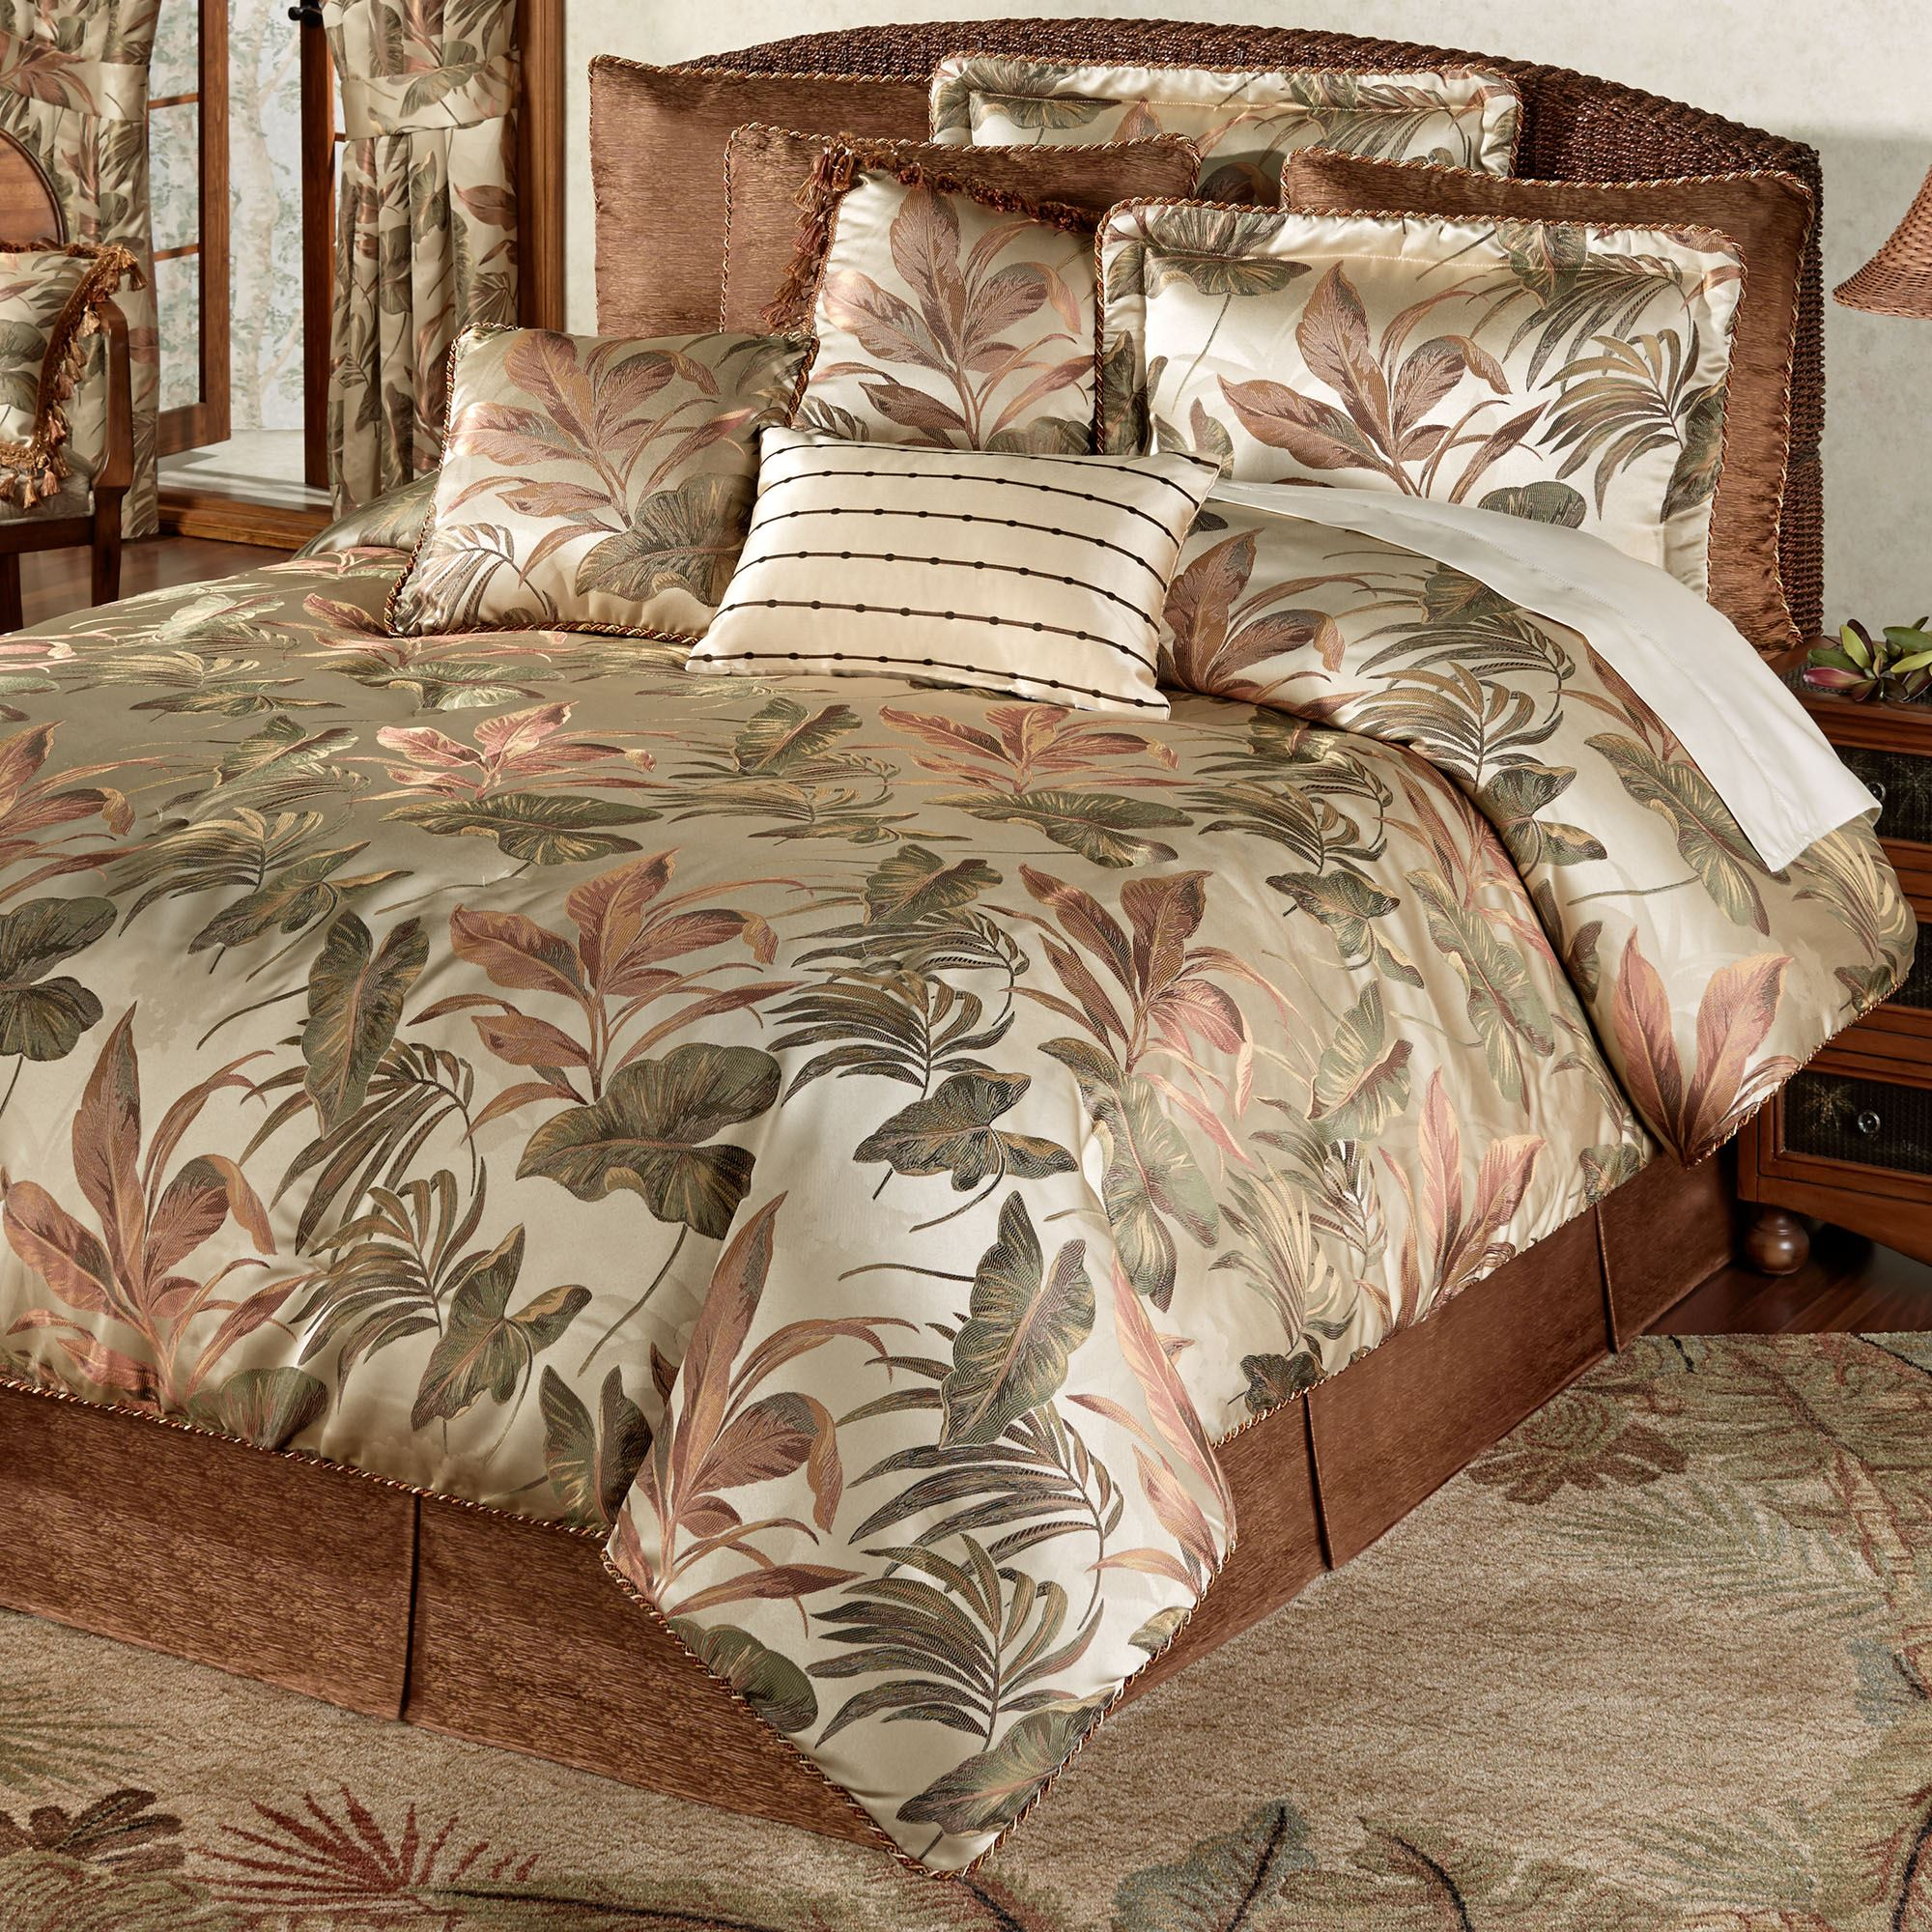 Bali Palm Tropical Comforter Bedding By Croscill